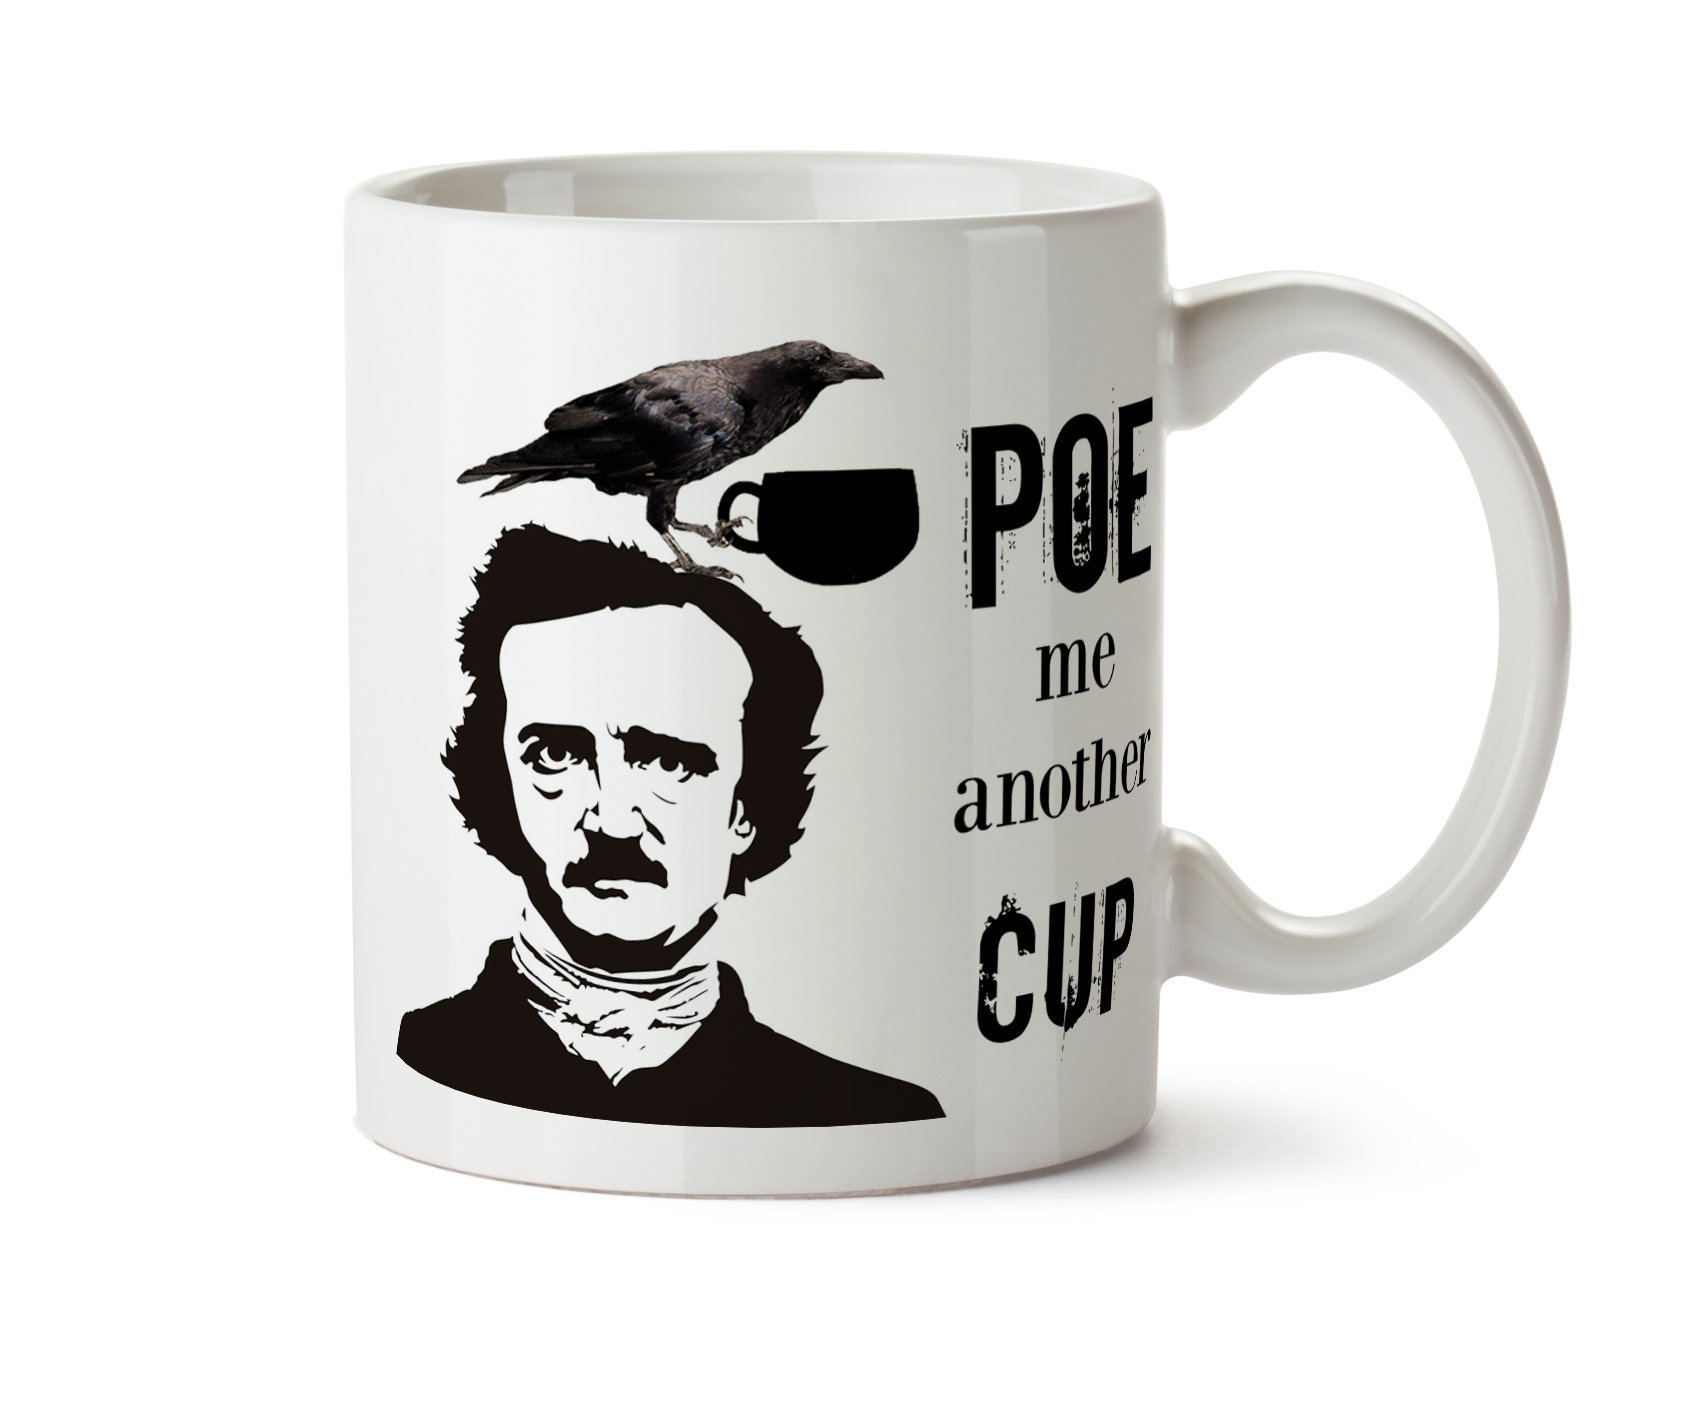 0ef3f5dbf POE Me Another Cup of Coffee 11 oz Mug Edgar Allan Poe The Raven ...